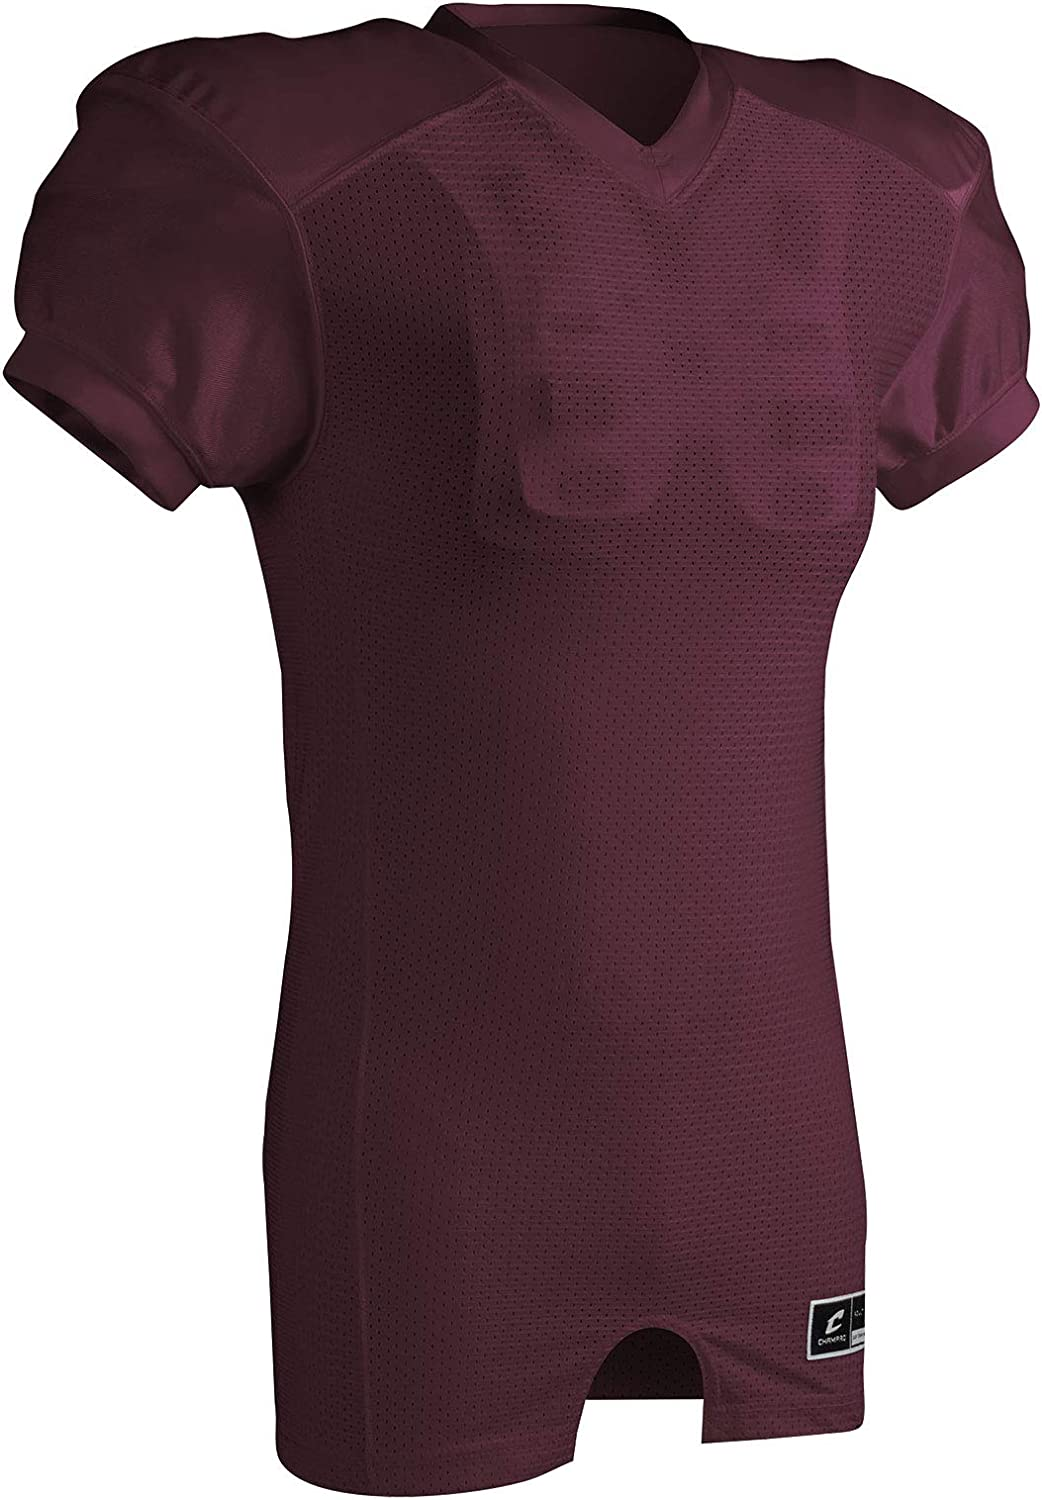 CHAMPRO Red Dog Collegiate Fit Polyester//Spandex Football Jersey